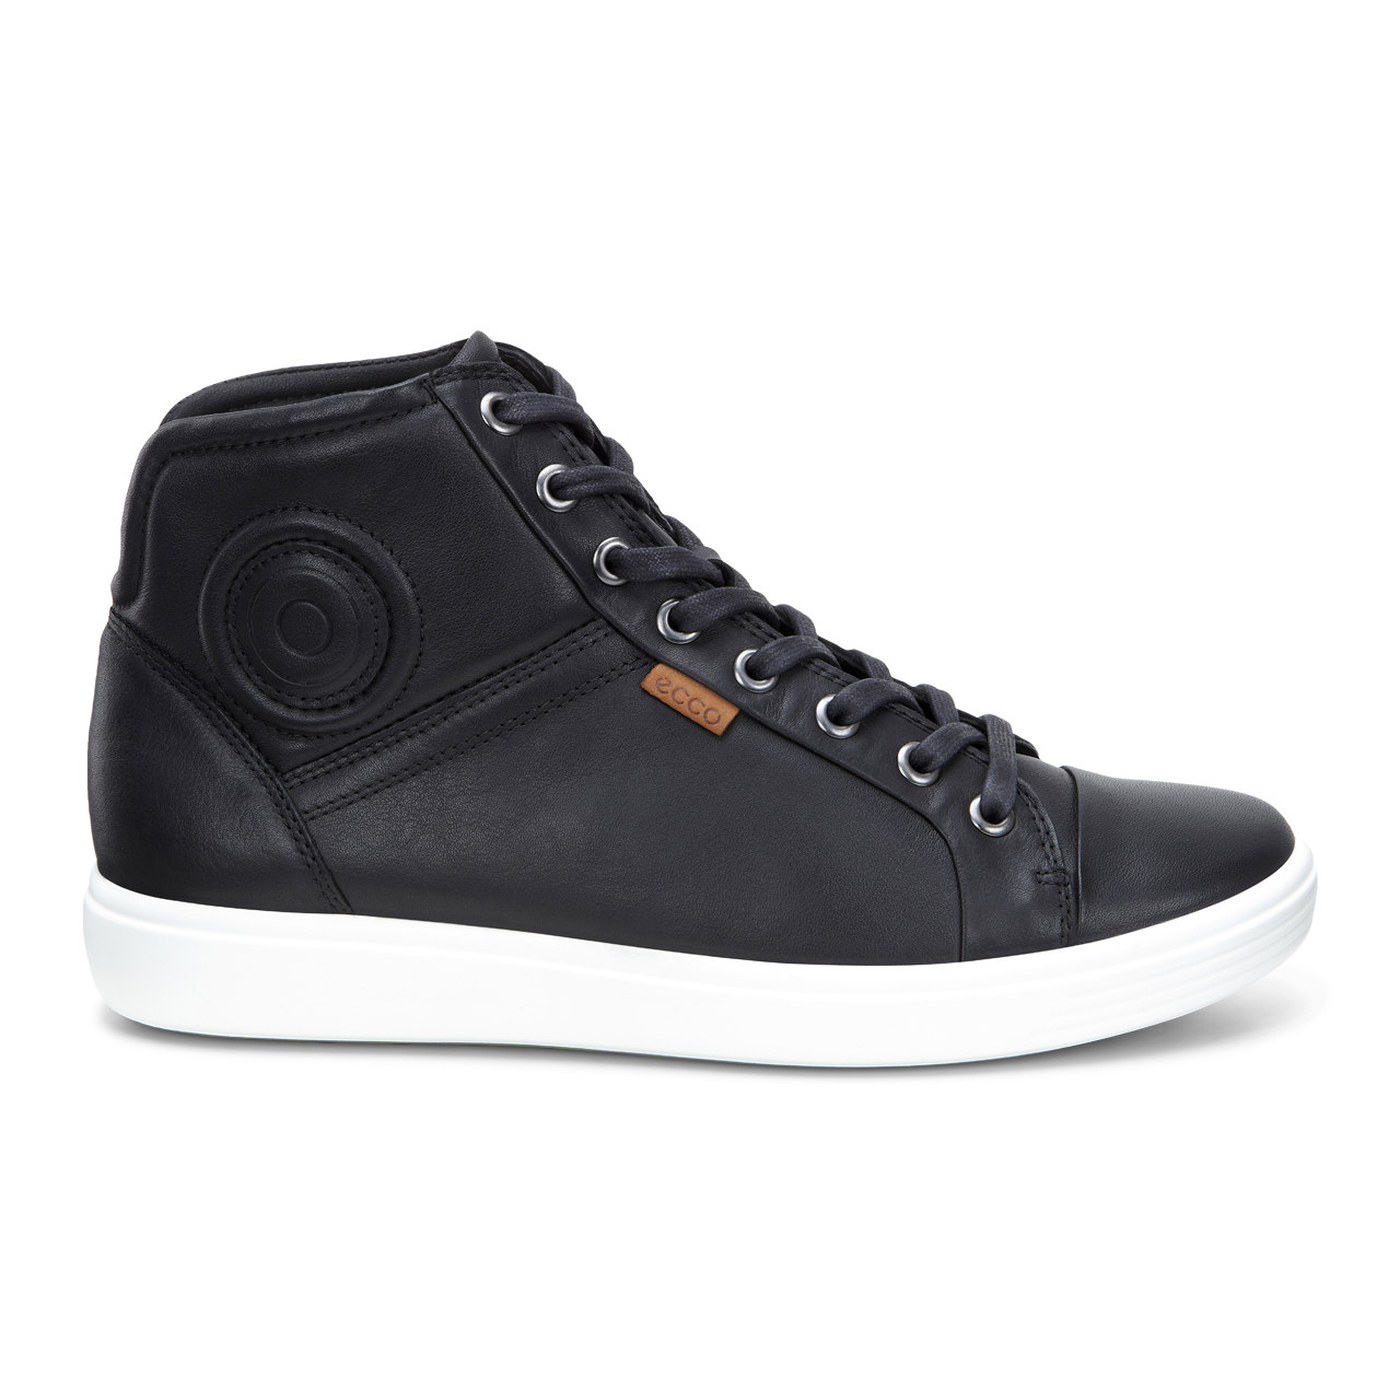 ECCO Womens Soft 7 High Top